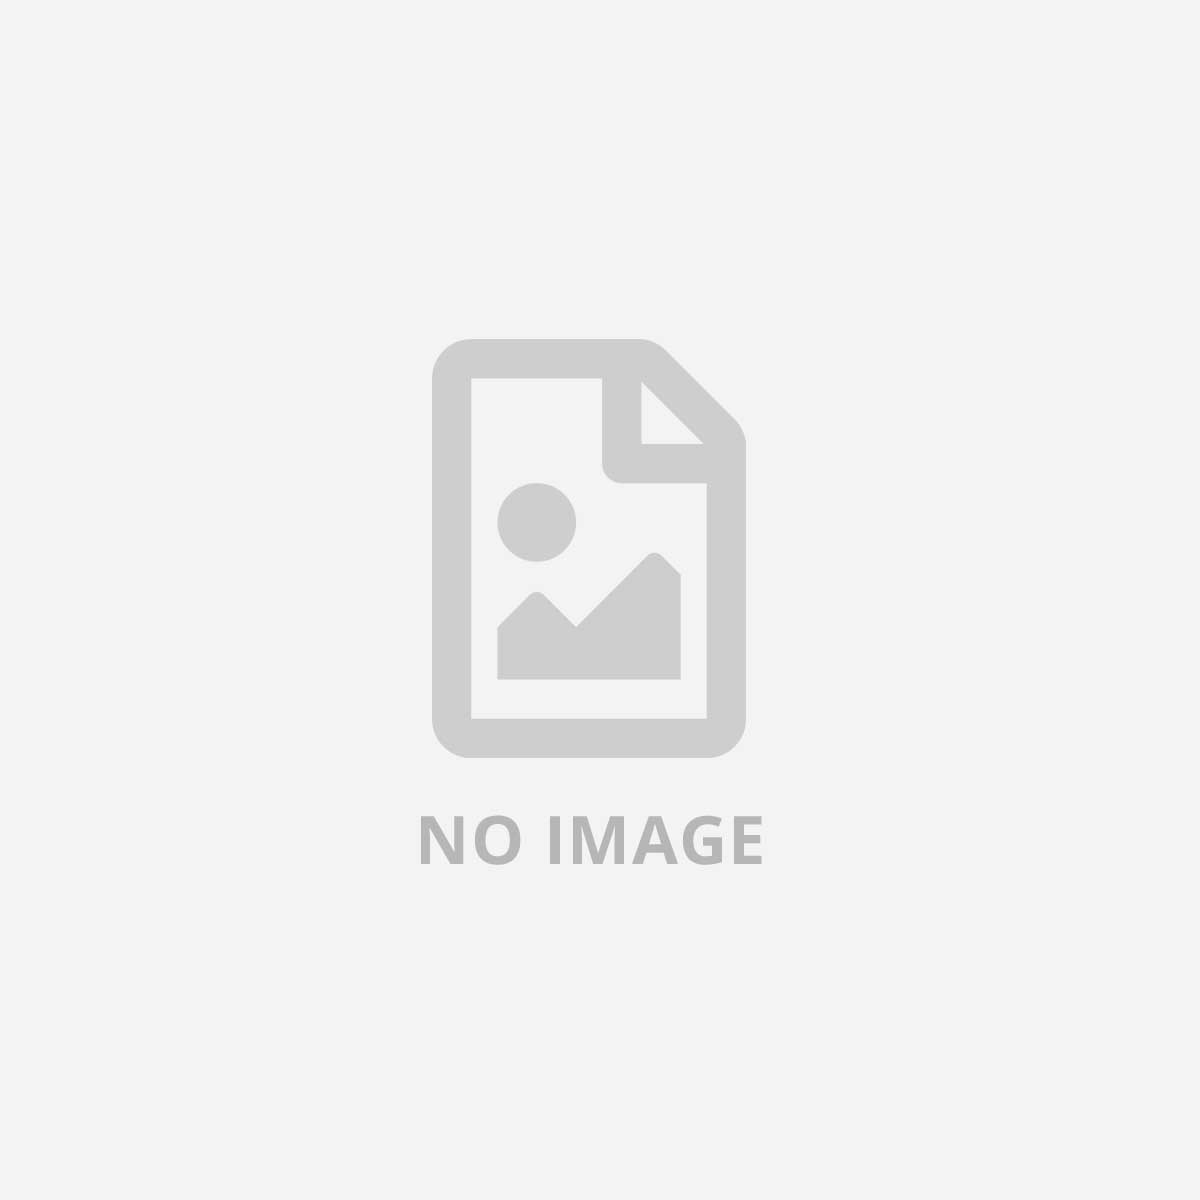 XYZ PRINTING DA VINCI MINI W+ (BLACK COLOR)